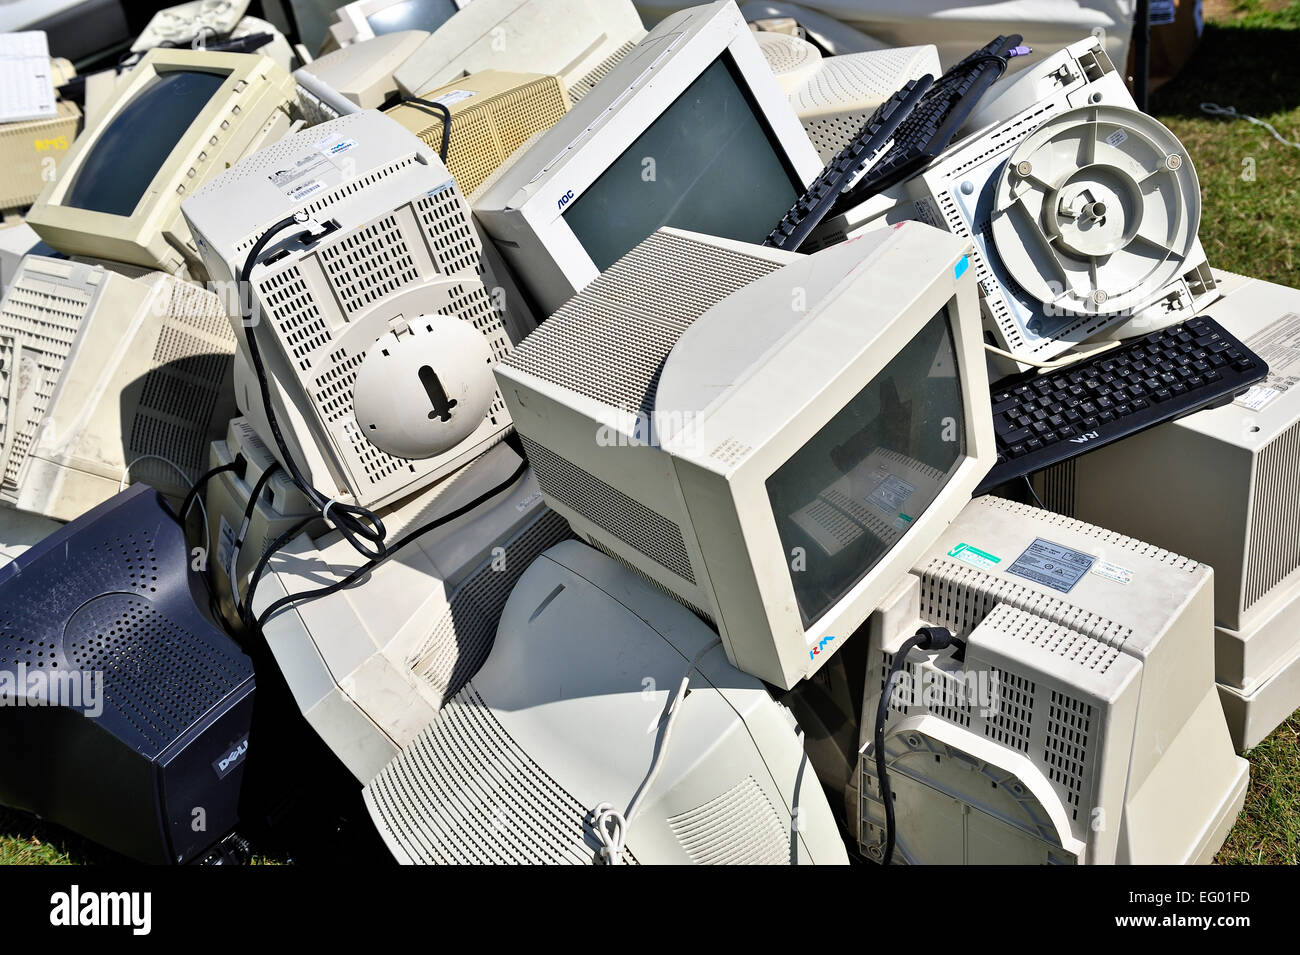 pile-of-old-computer-monitors-and-keyboa